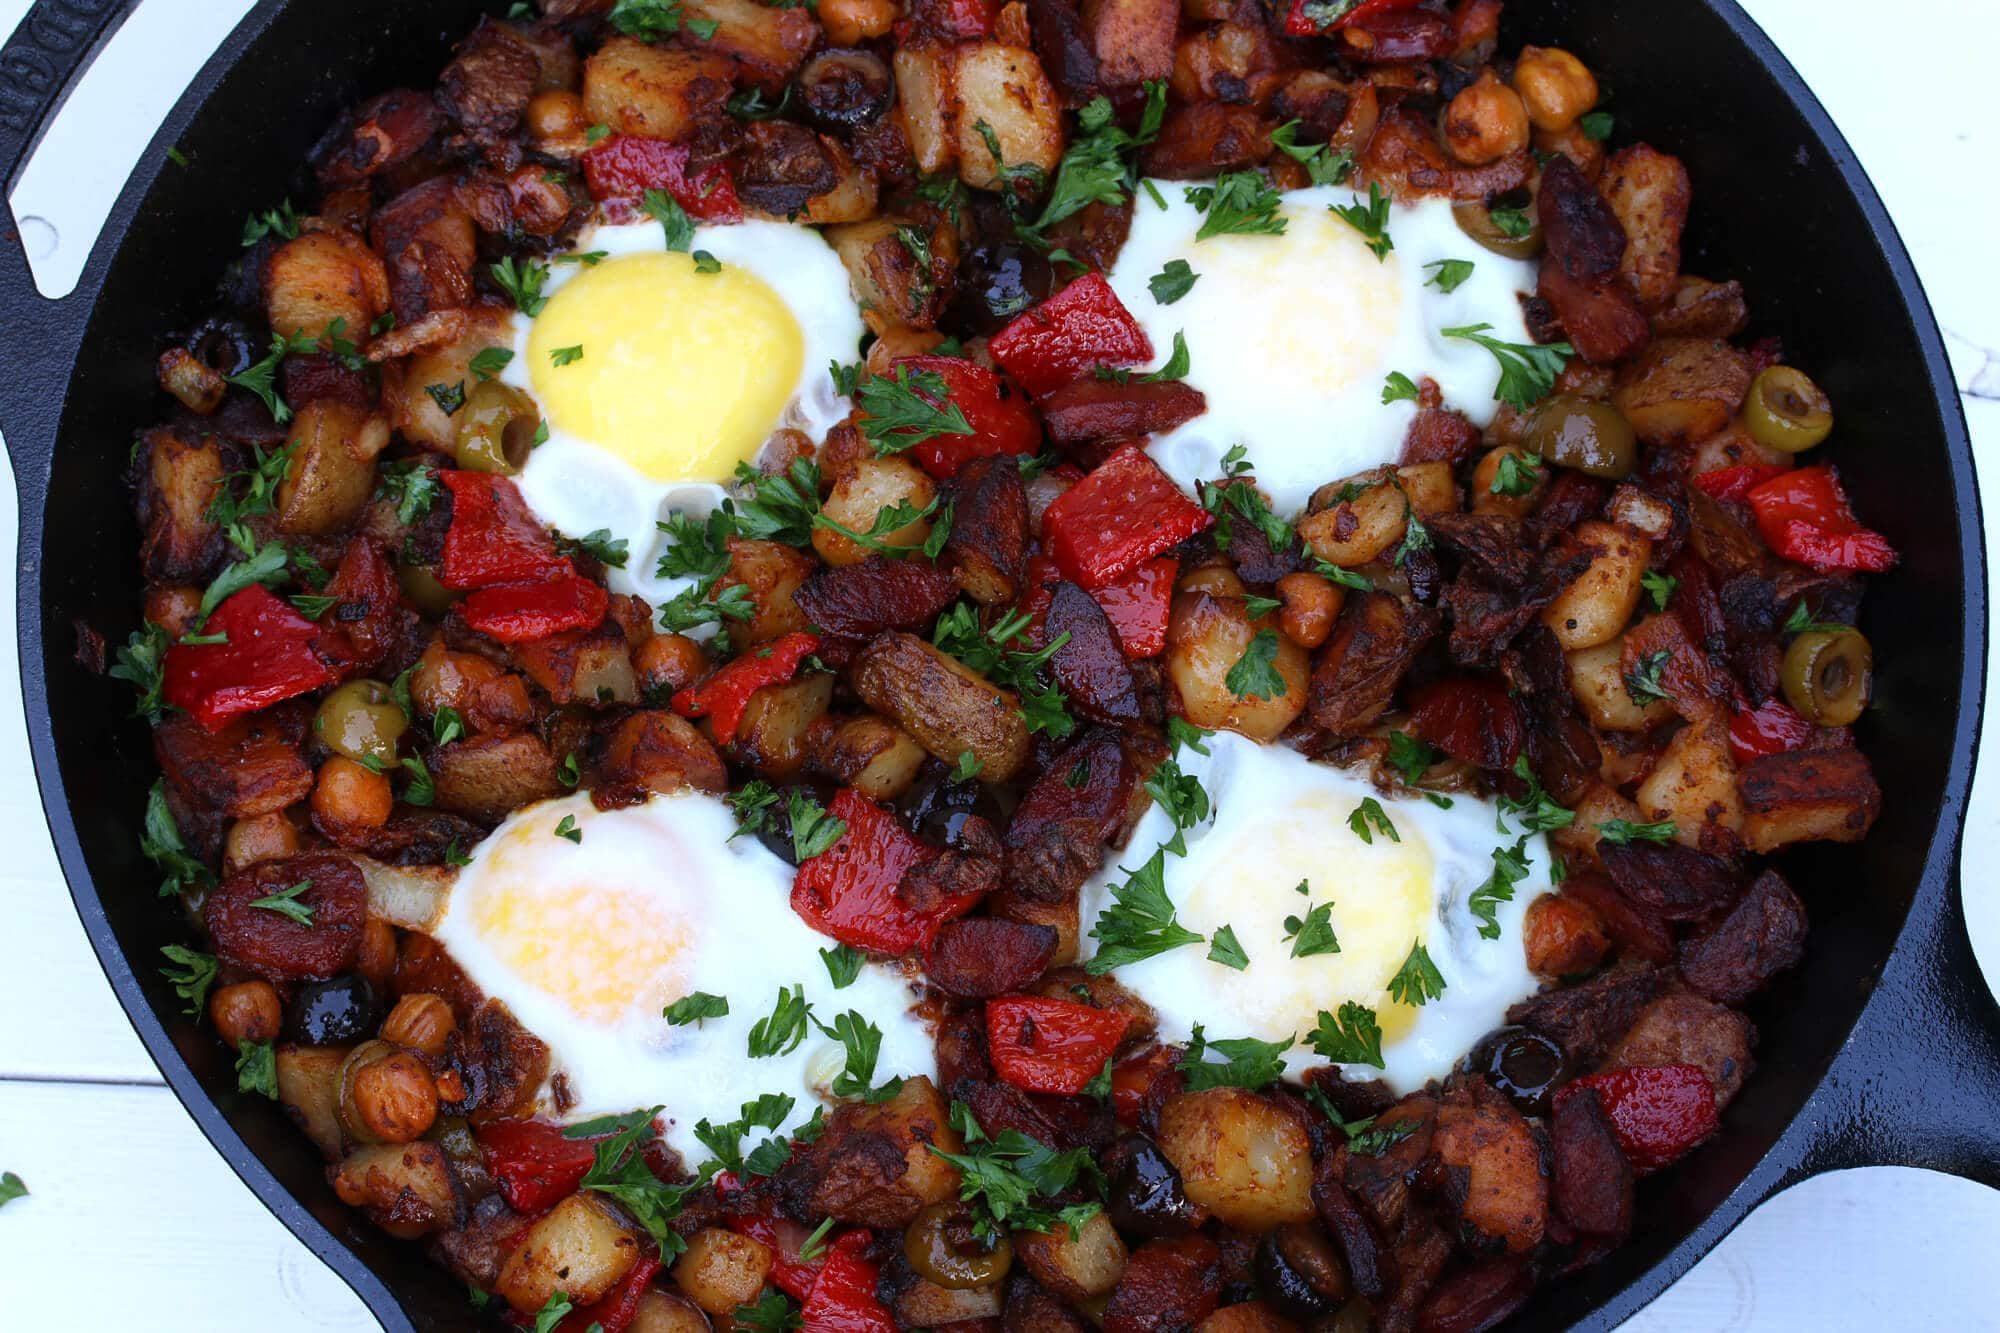 portuguese potato hash linquica sausage olives garbanzo beans chickpeas roasted peppers recipe